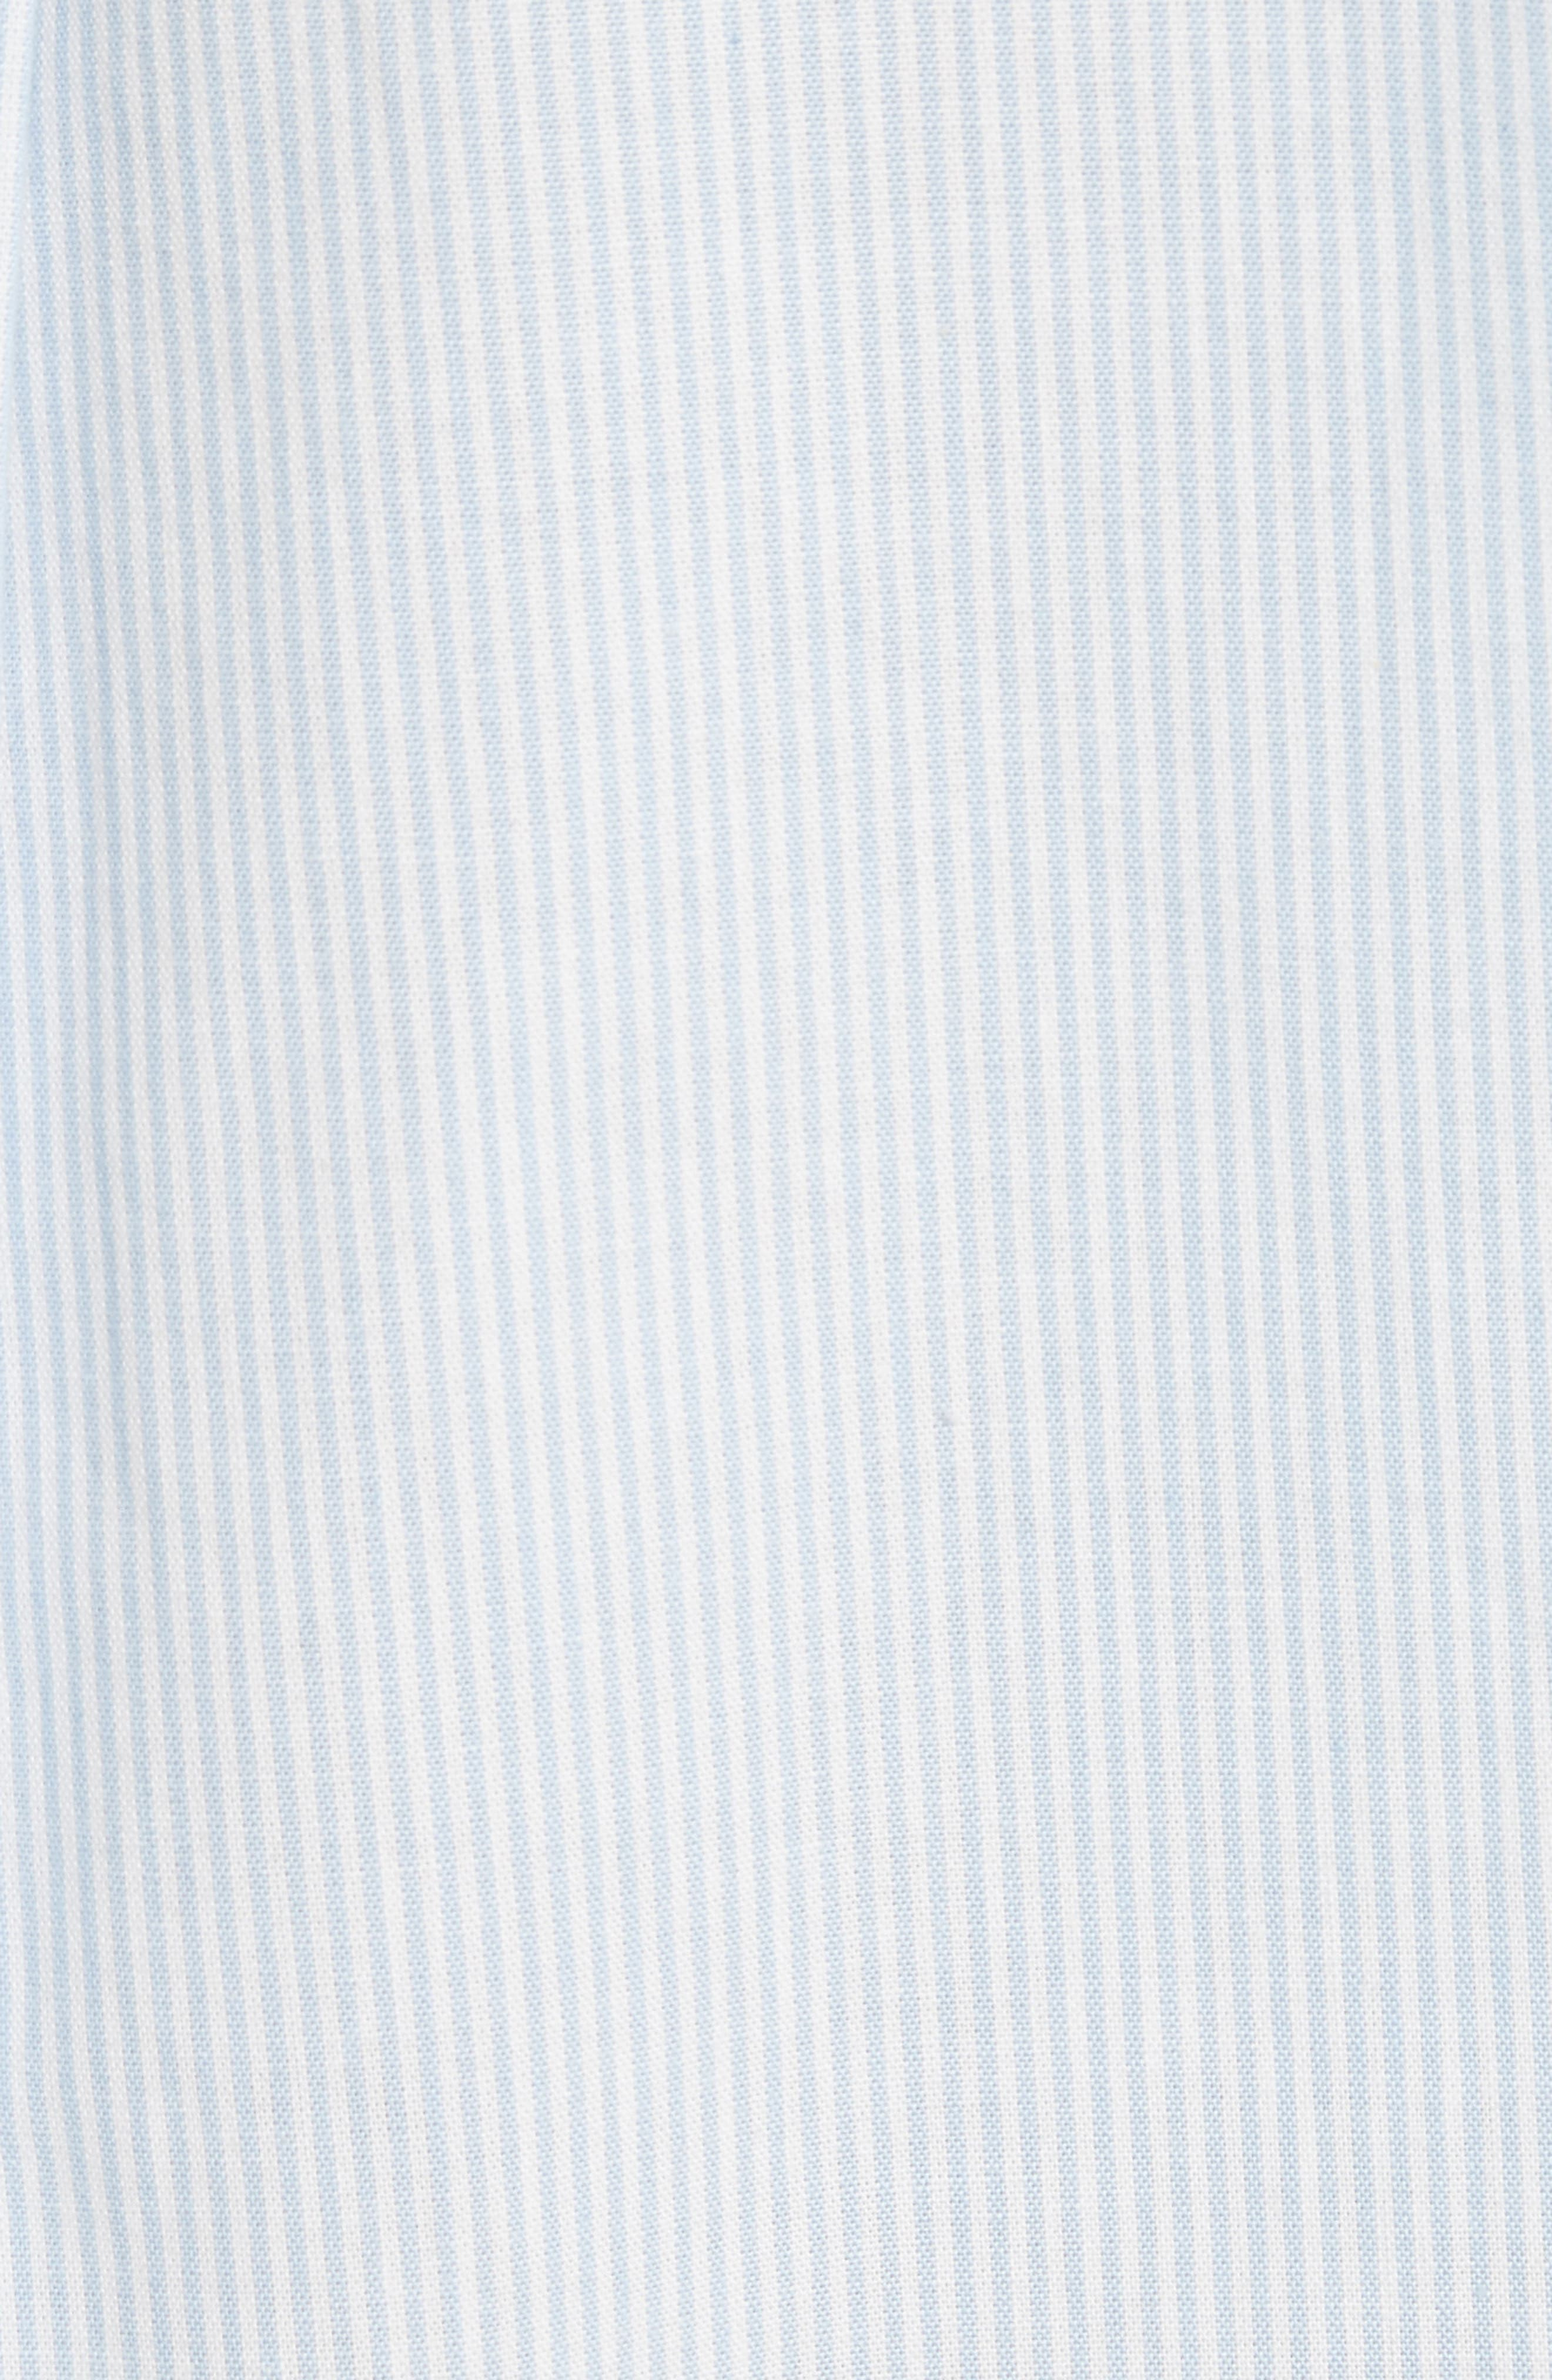 Embroidered Stripe Cotton Shirt,                             Alternate thumbnail 5, color,                             459